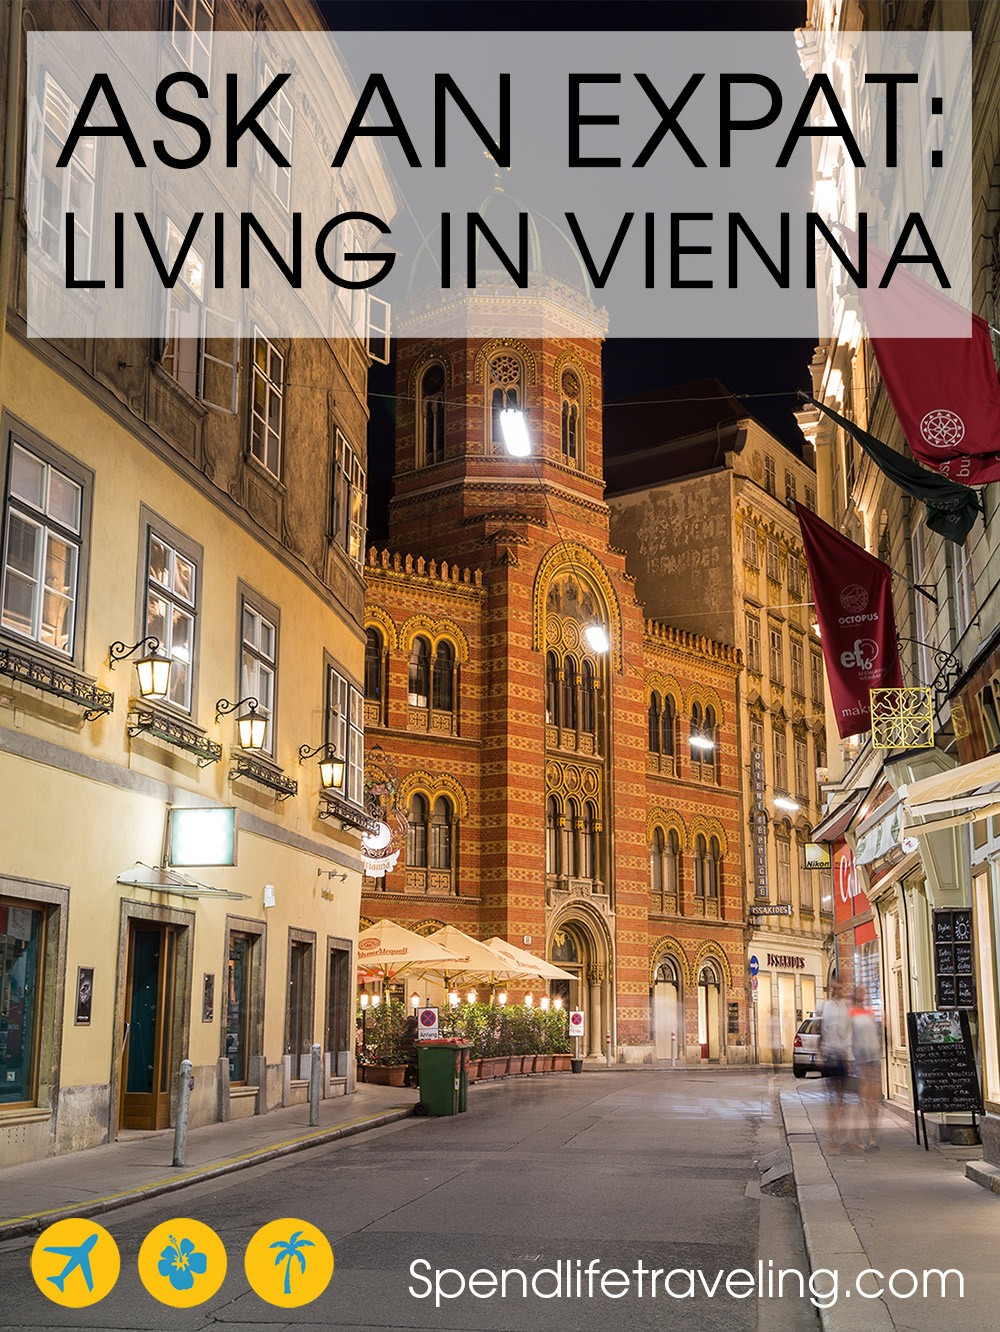 Interview with an expat about what Vienna is really like. Are you thinking about moving to Vienna? Check out this interview to find out all you need to know about life in Vienna. Plus travel tips for Vienna from an insider.